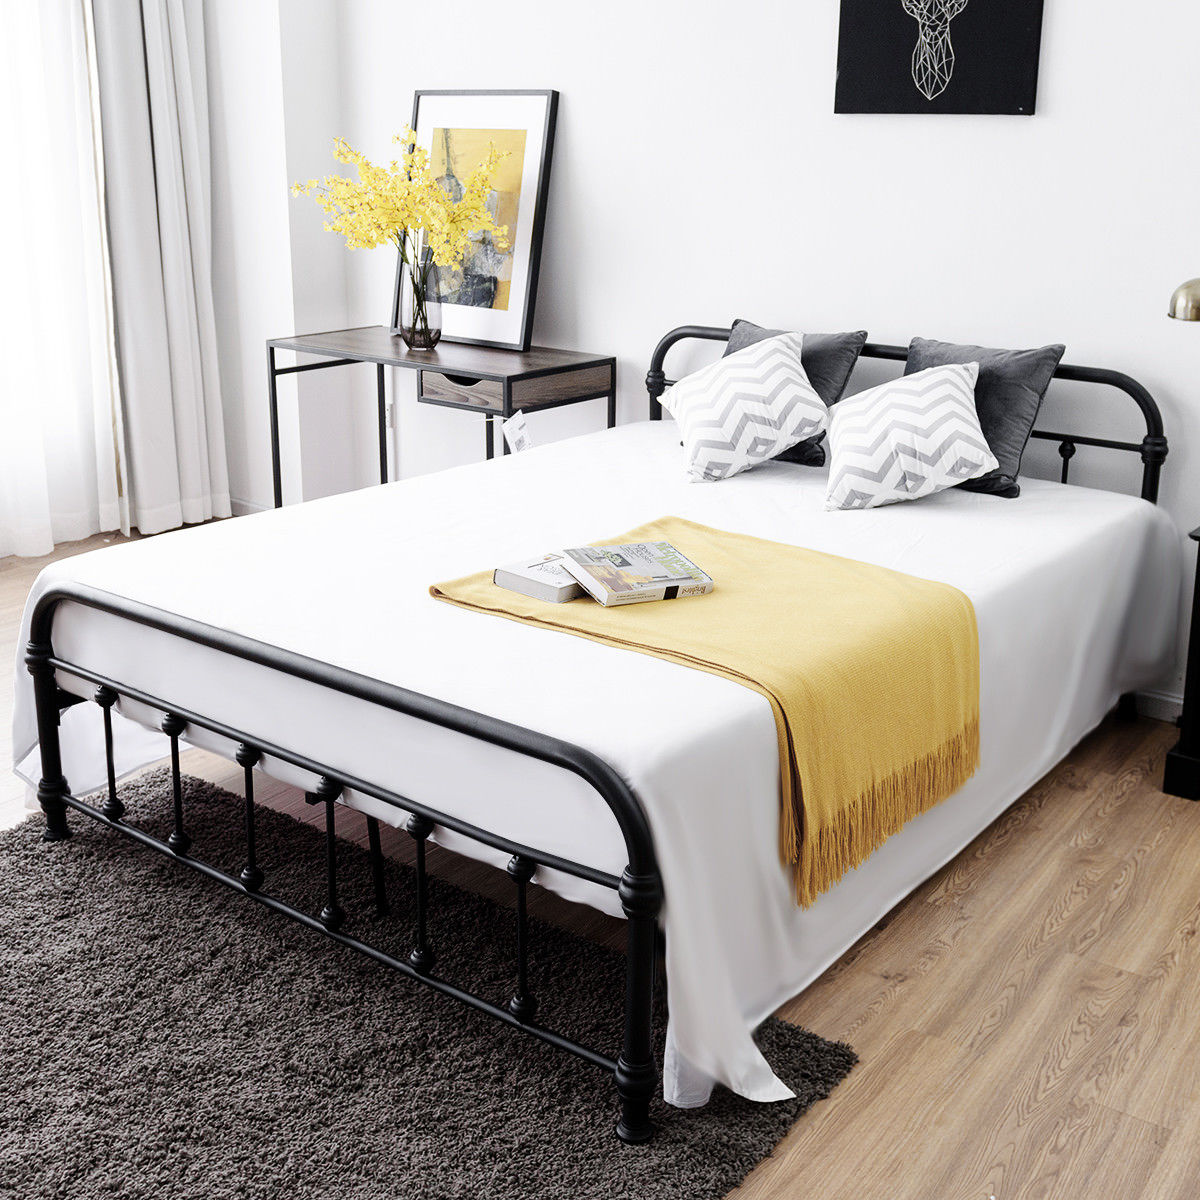 Queen Size Steel Bed Frame W Stable Metal Slats Headboard